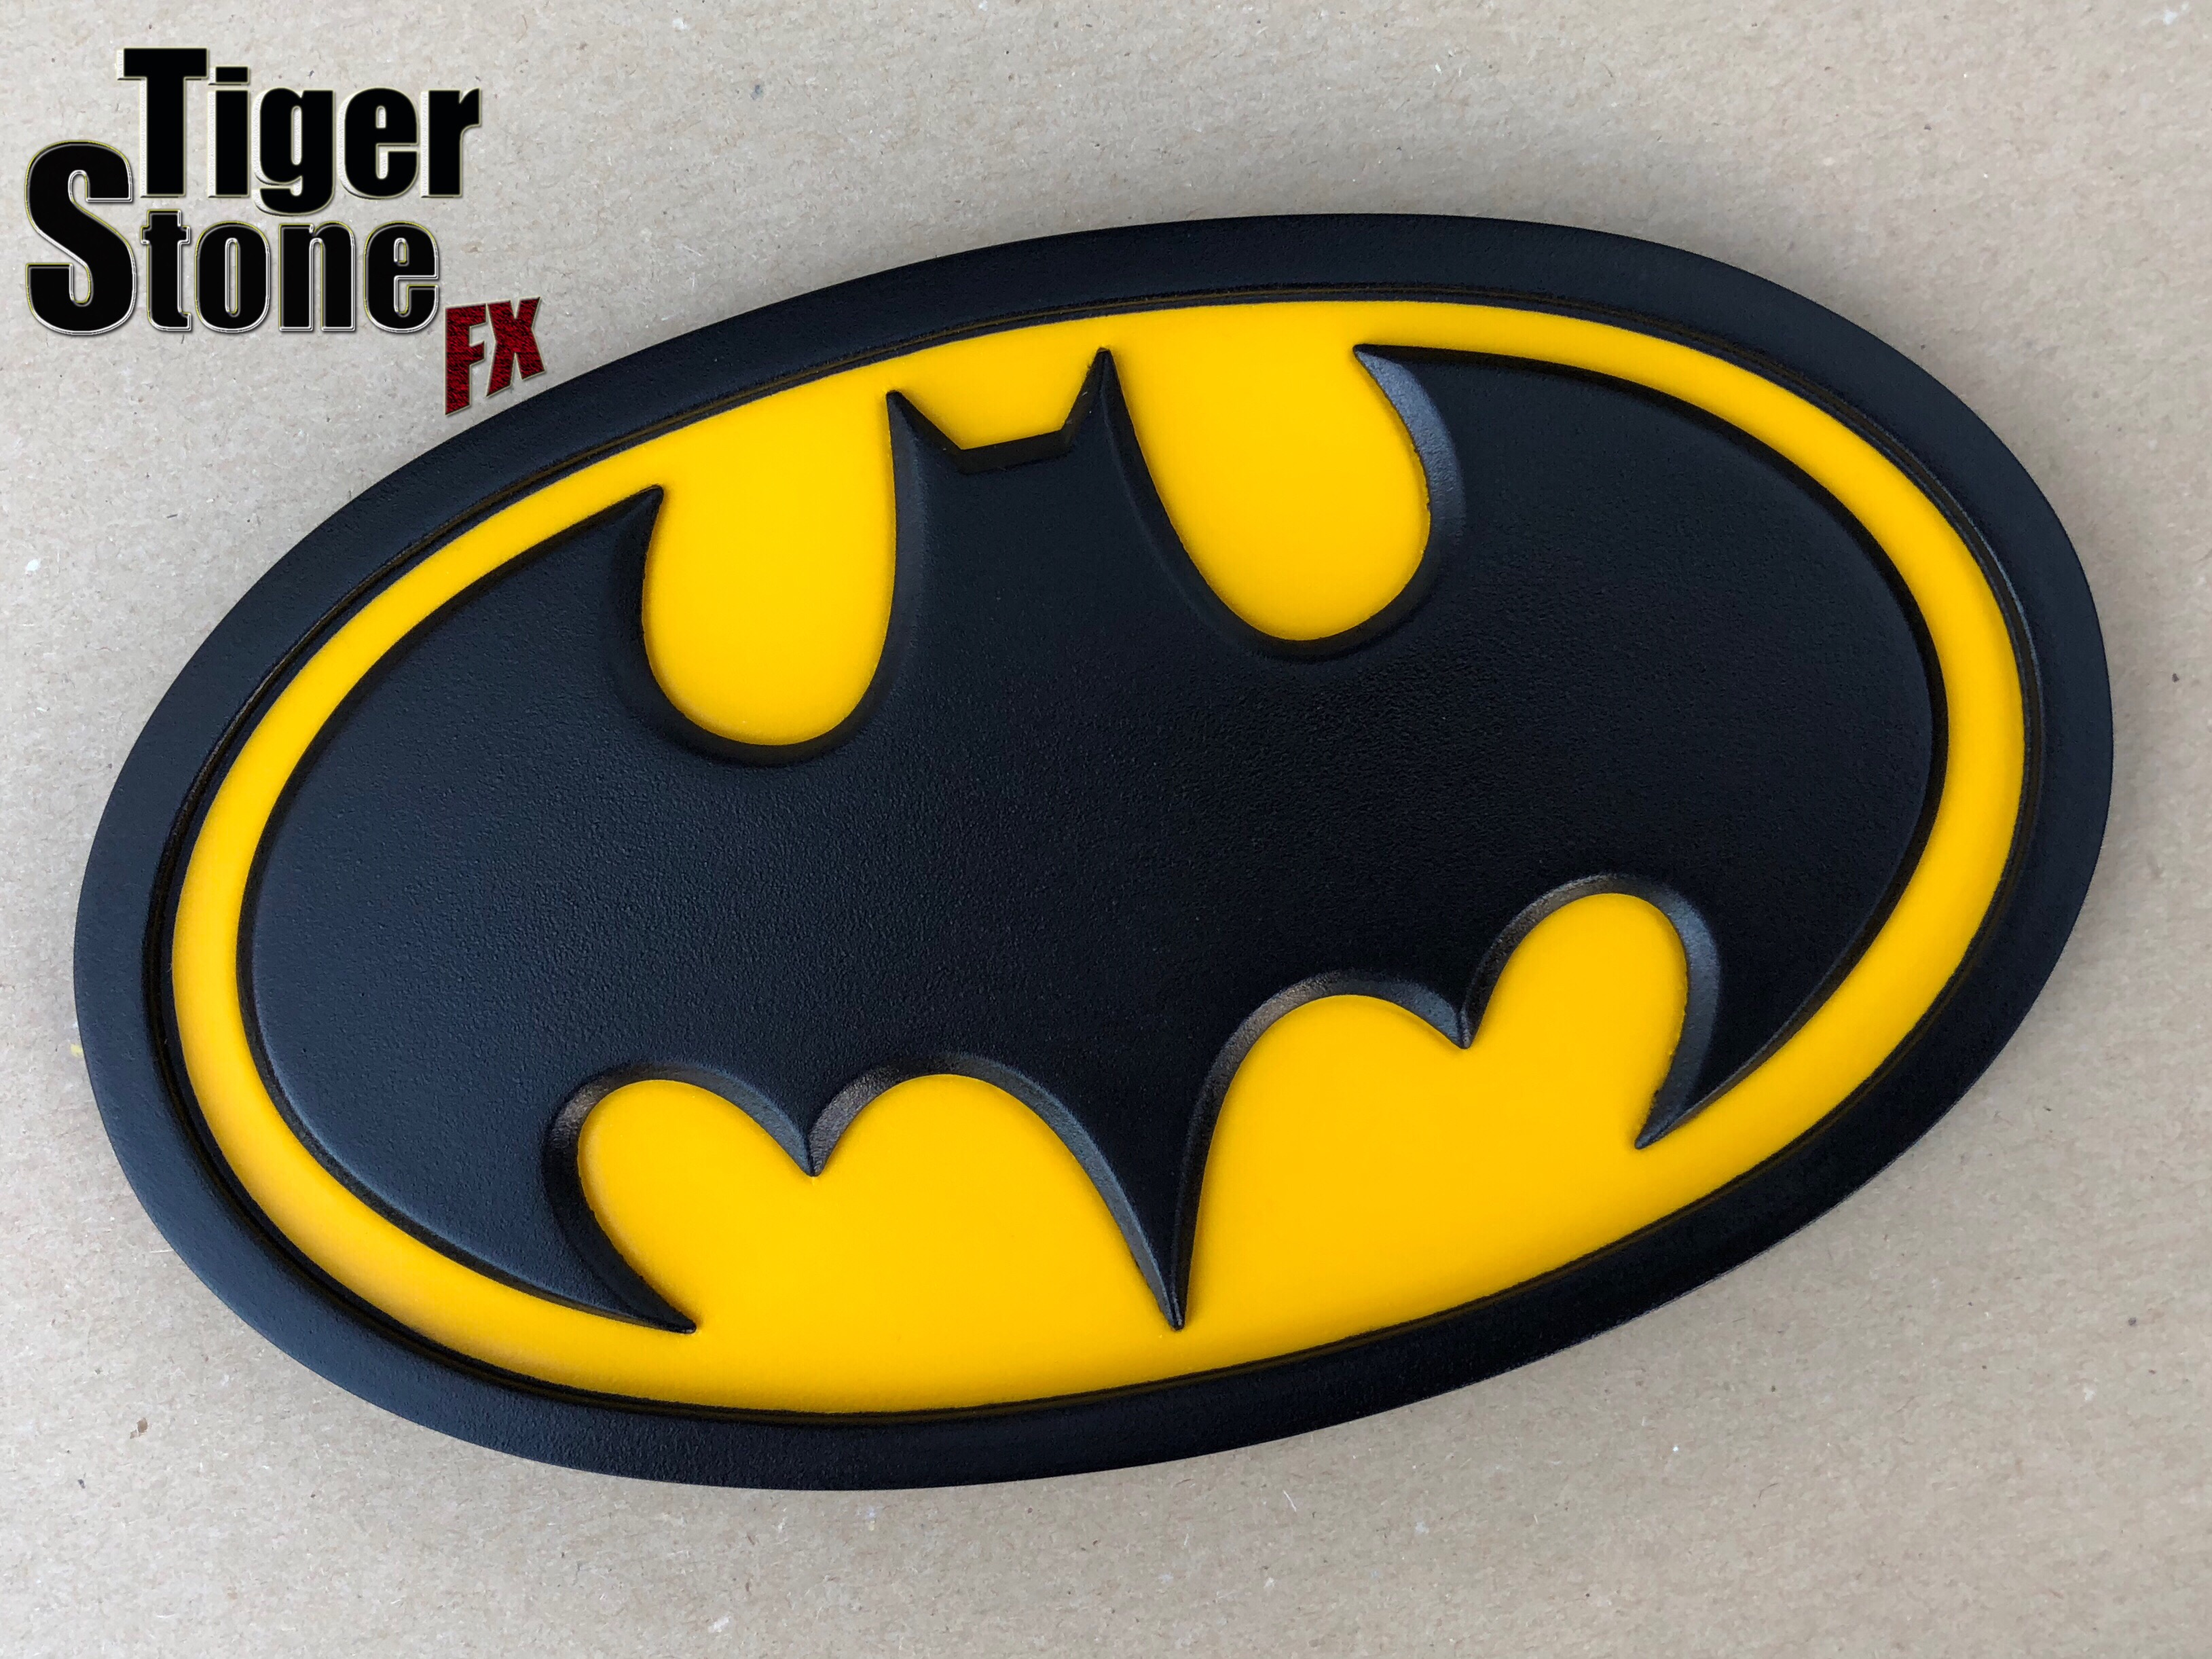 Batman classic oval emblem Batman The Animated Series chest emblem (blog photo) - by Tiger Stone FX